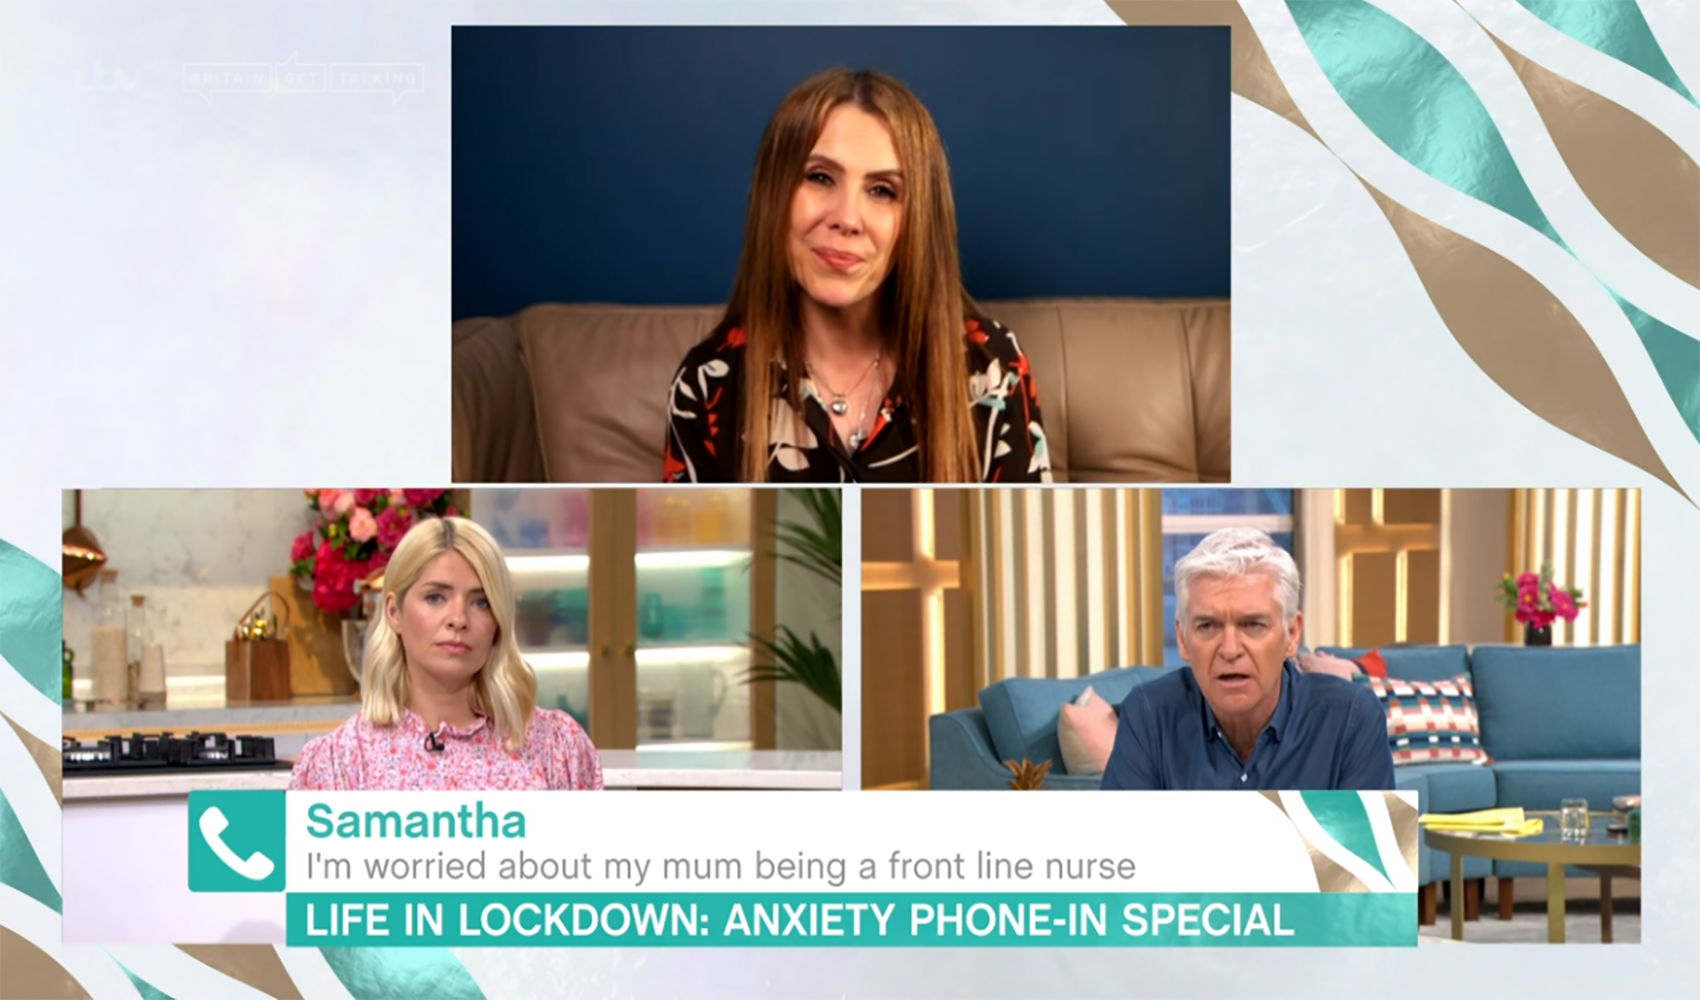 This Morning viewer breaks down over not being able to see NHS nurse mum amid coronavirus crisis